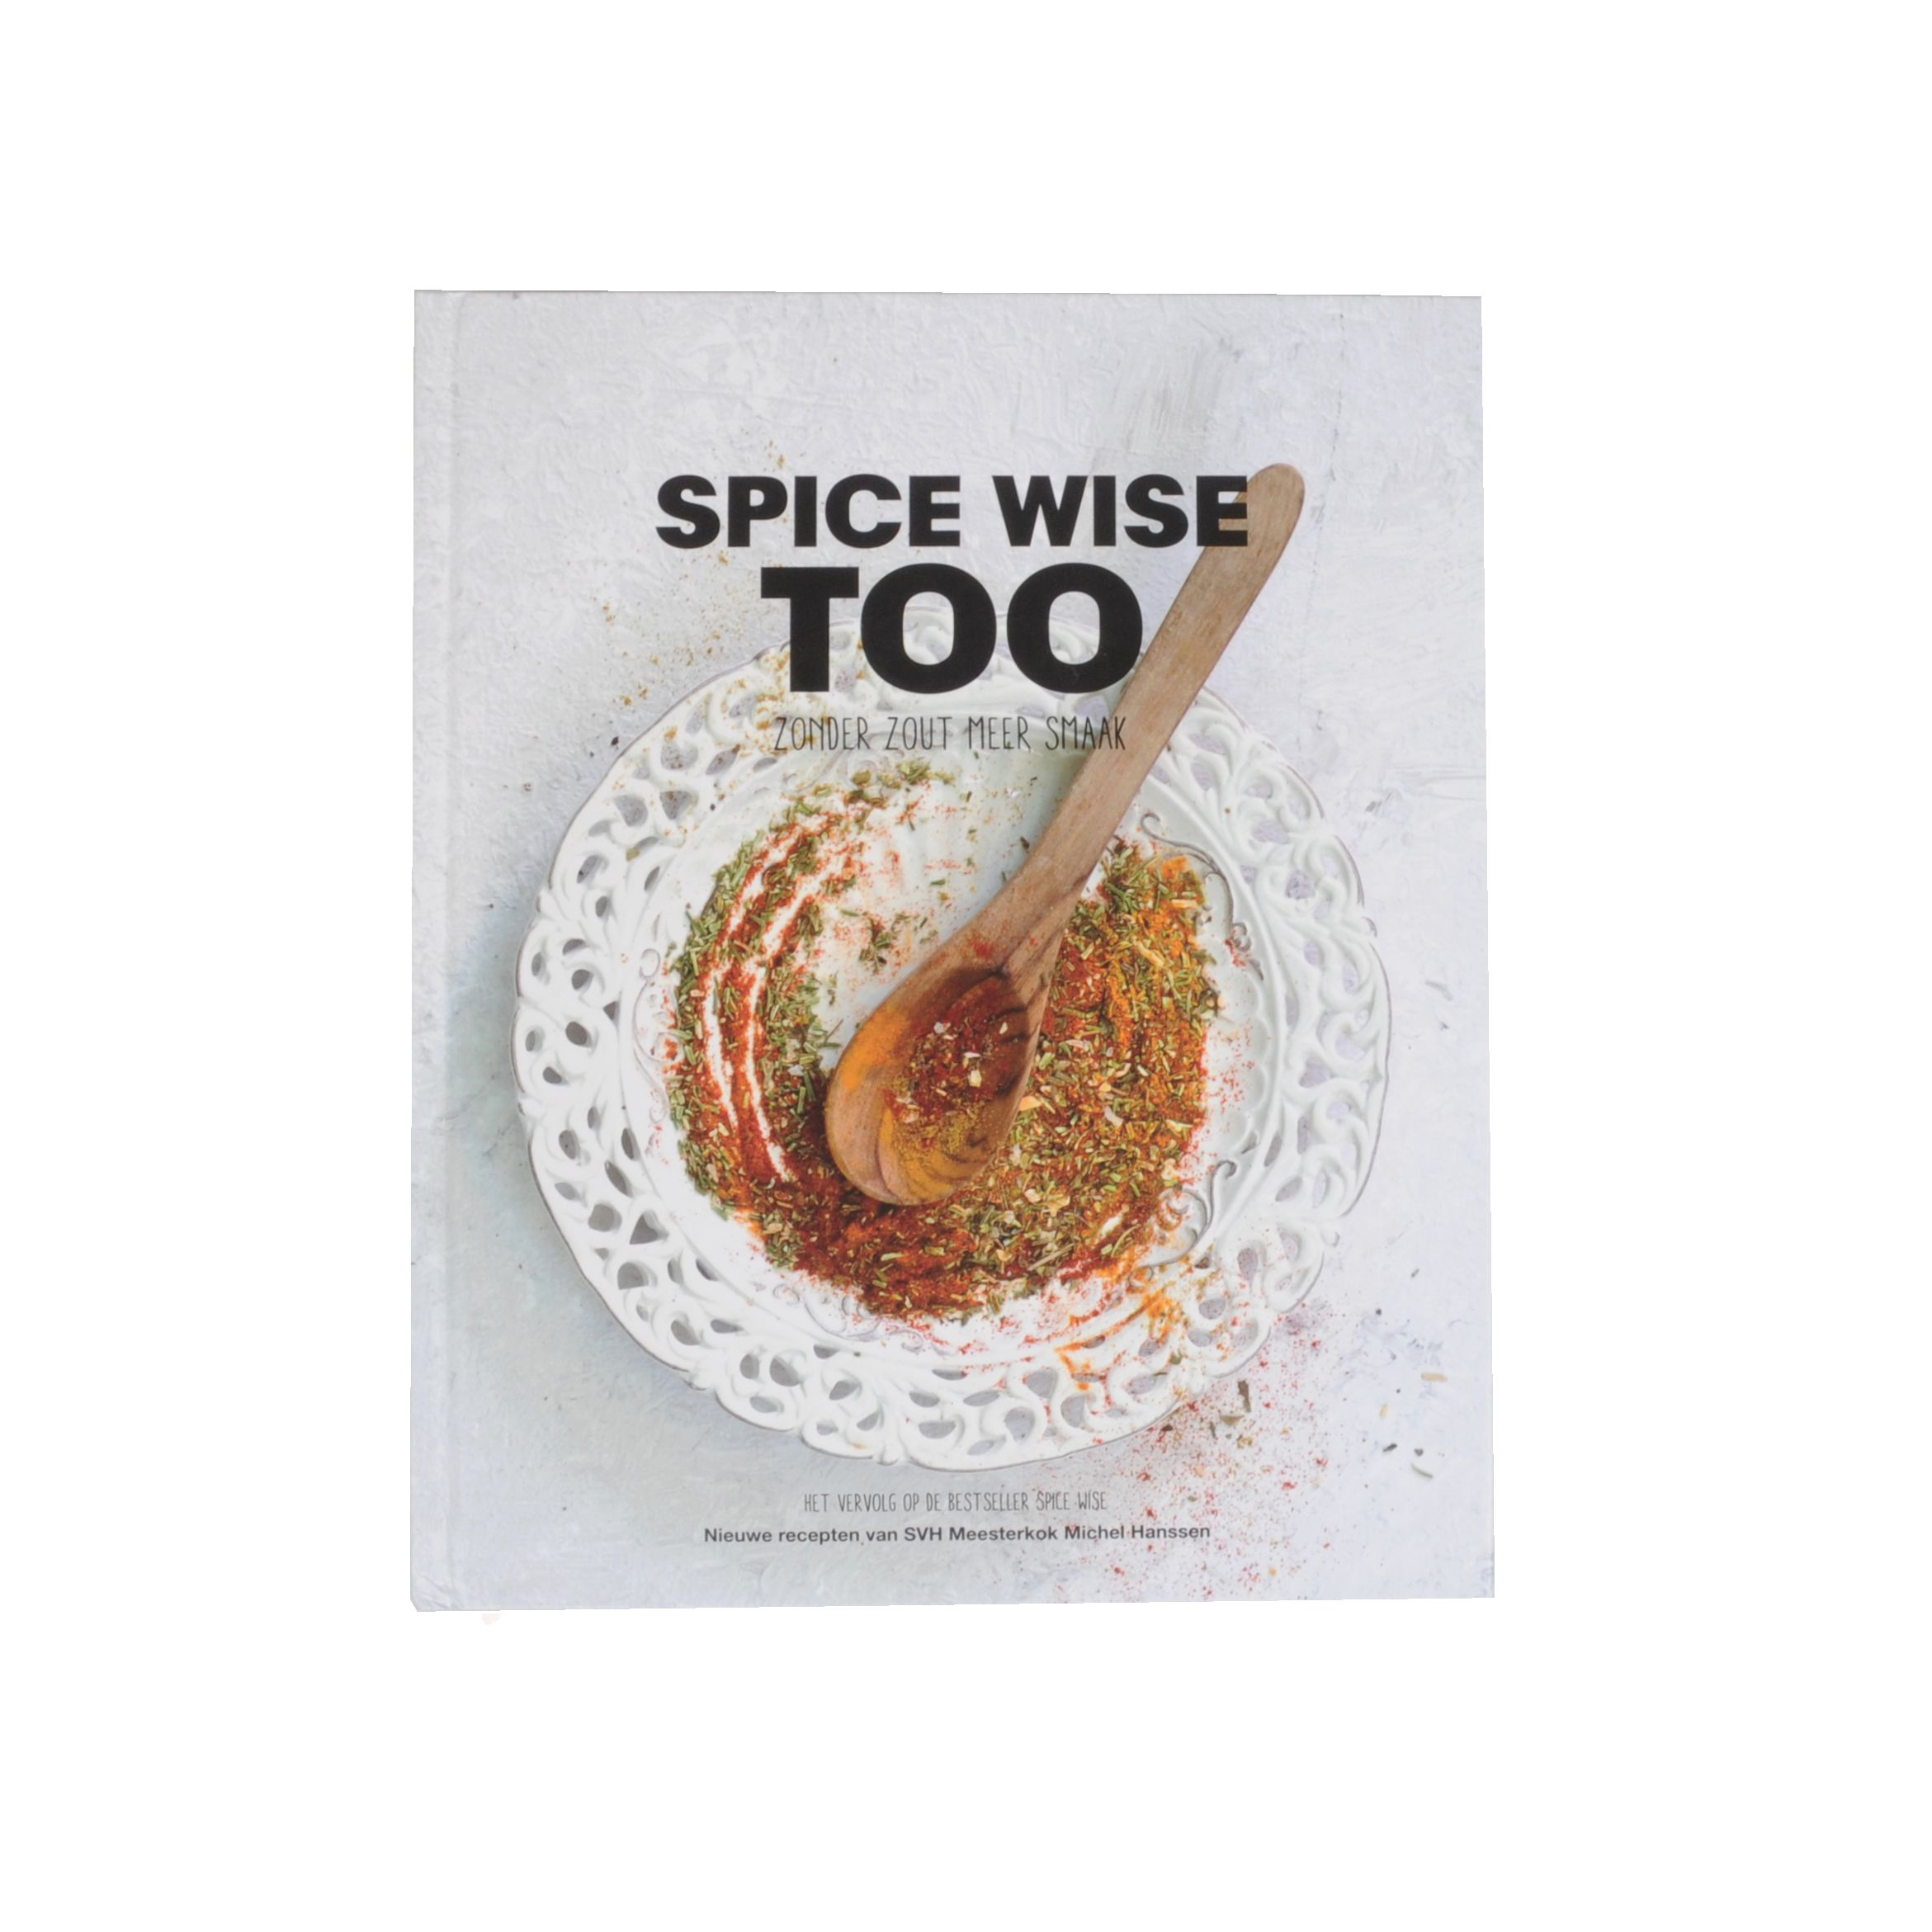 Spice wise, too